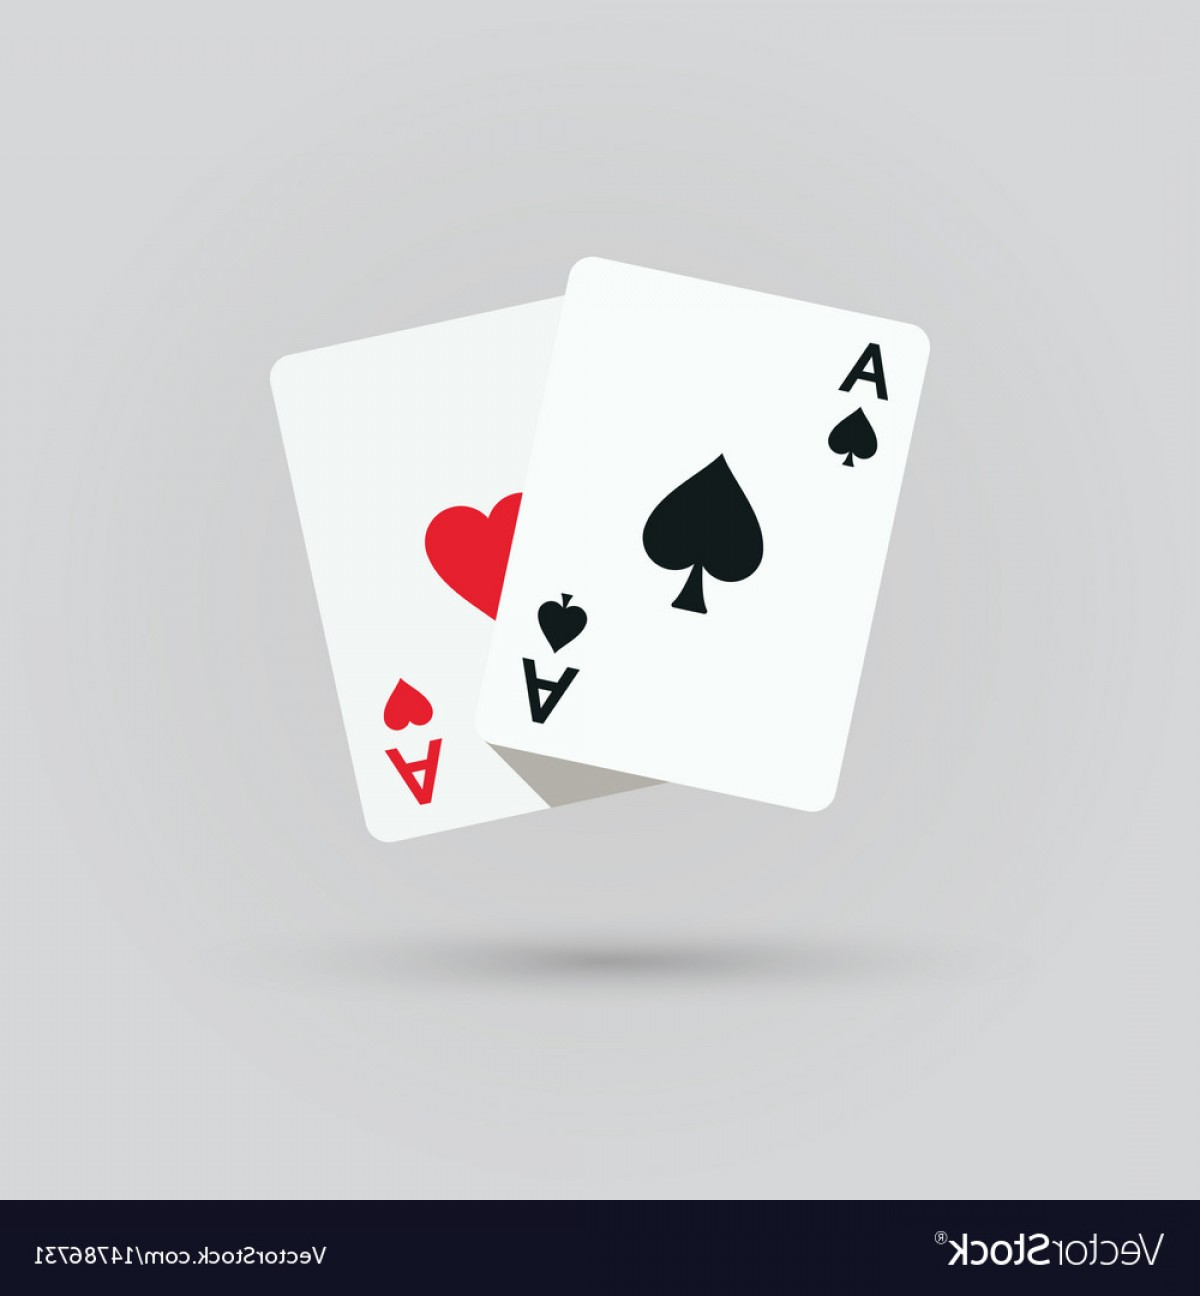 Poker Hand Vector: Two Aces Winning Poker Hand Vector